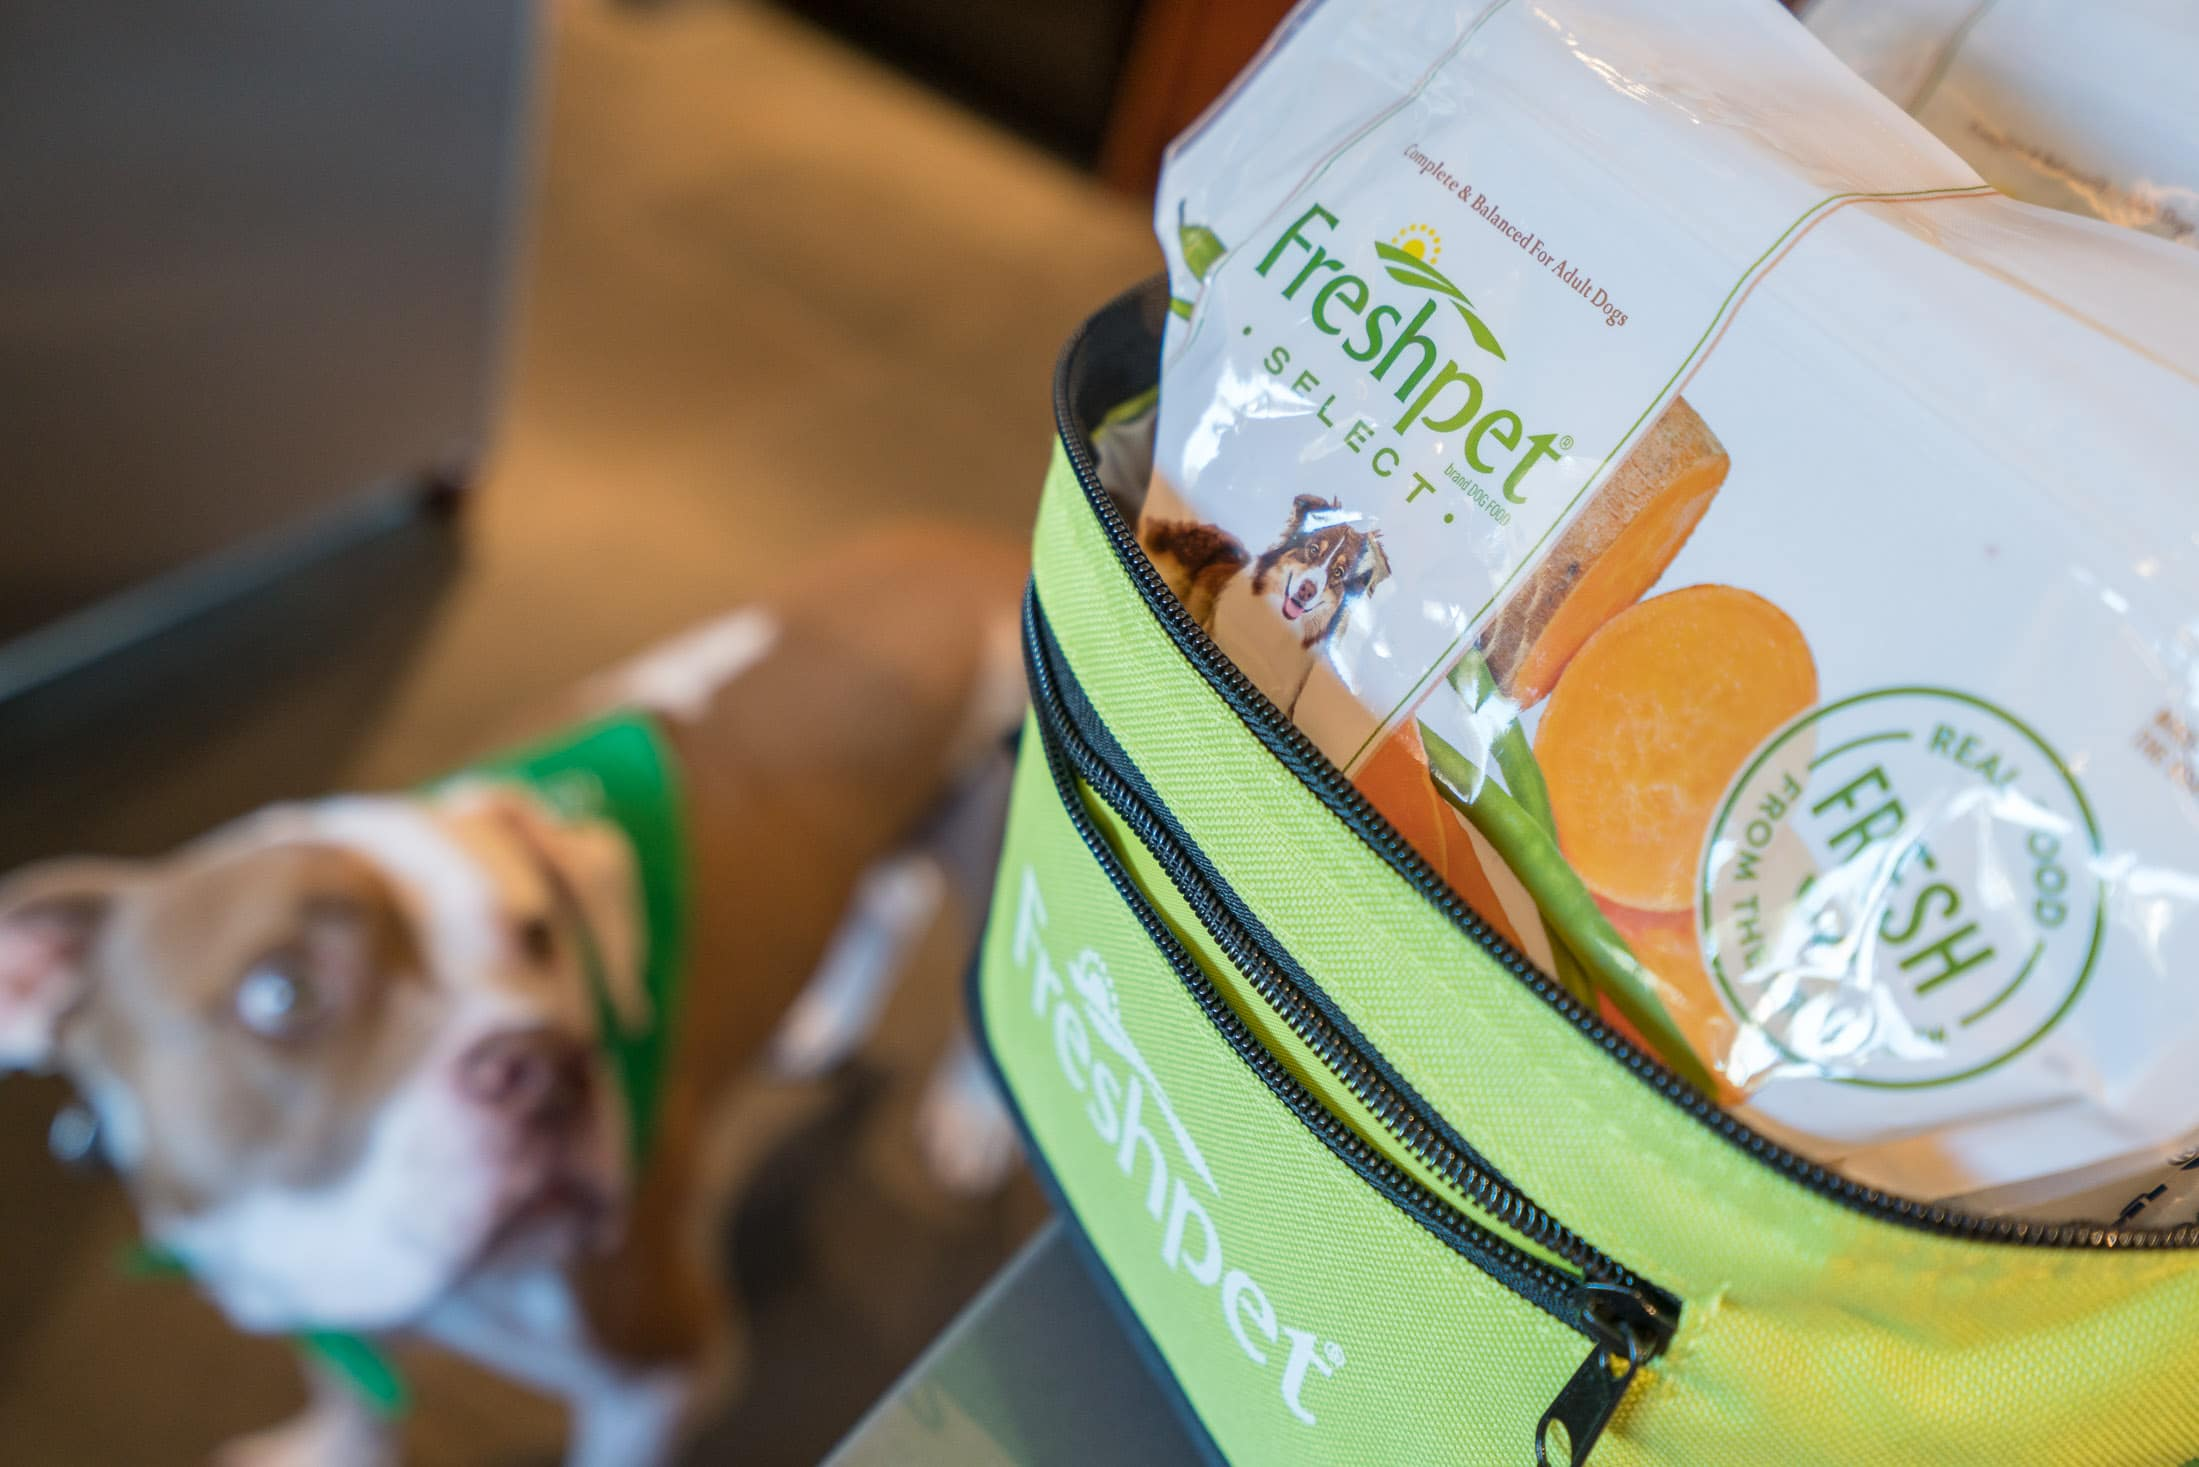 An Easy Way To Feed Your Dog Fresh Food La Jolla Mom